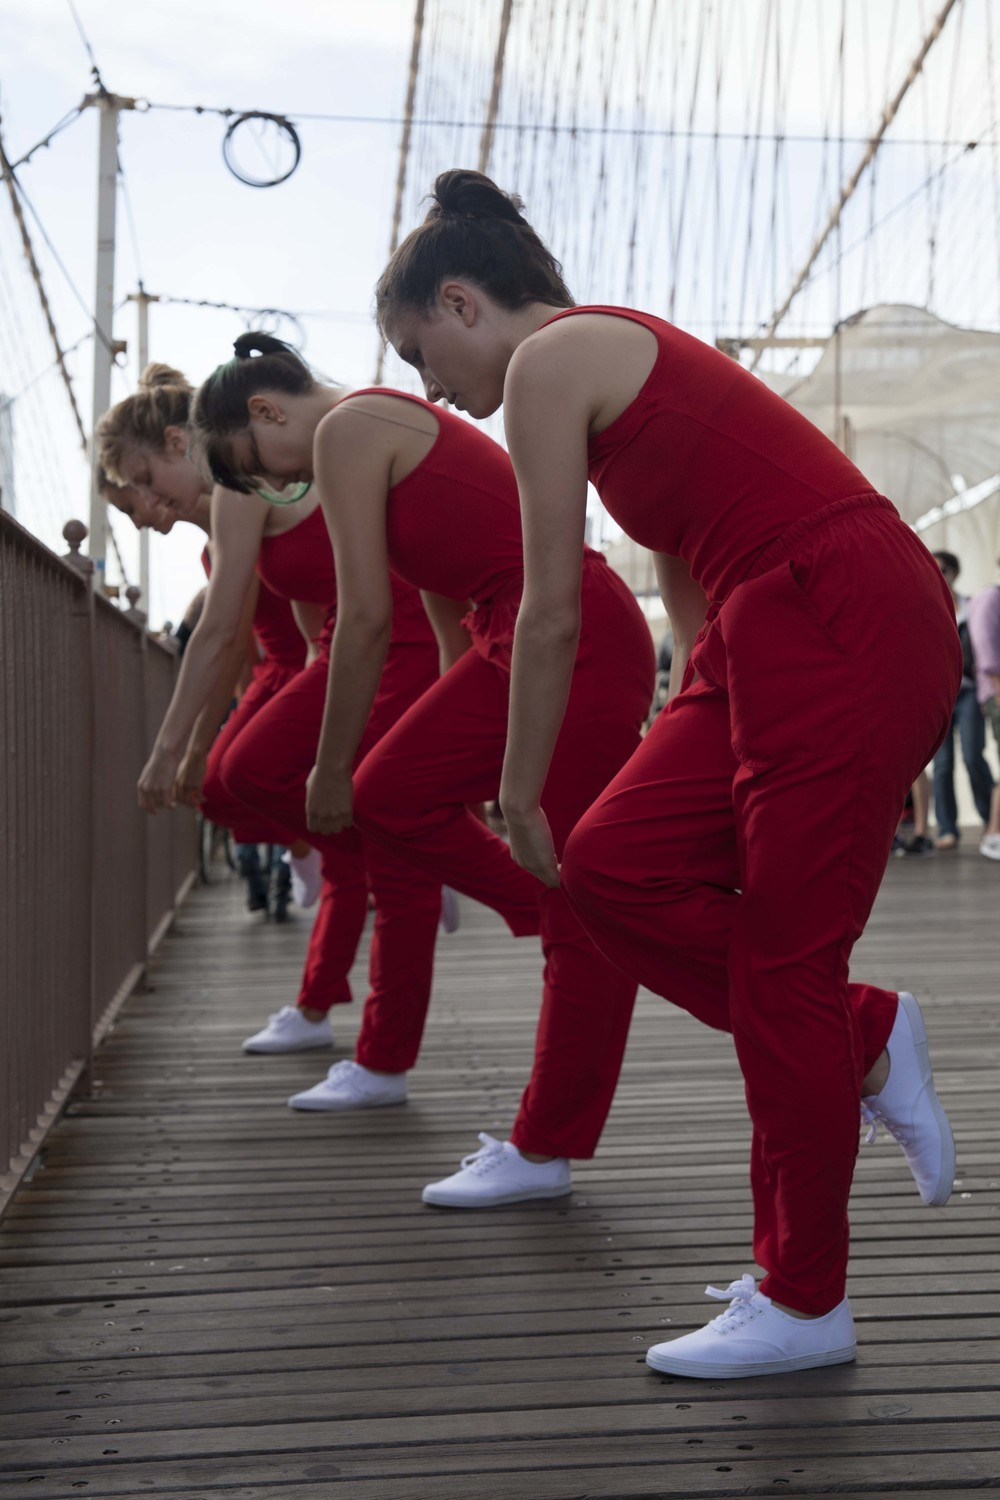 While crossing the Brooklyn Bridge, Rick Moody encountered dancers Kristin Swiat, Giovanna Gamna, Lydia Chrisman, Maya Orchin, Jessica Myers, and Annie Saeugling performing choreography by Jen Harmon for